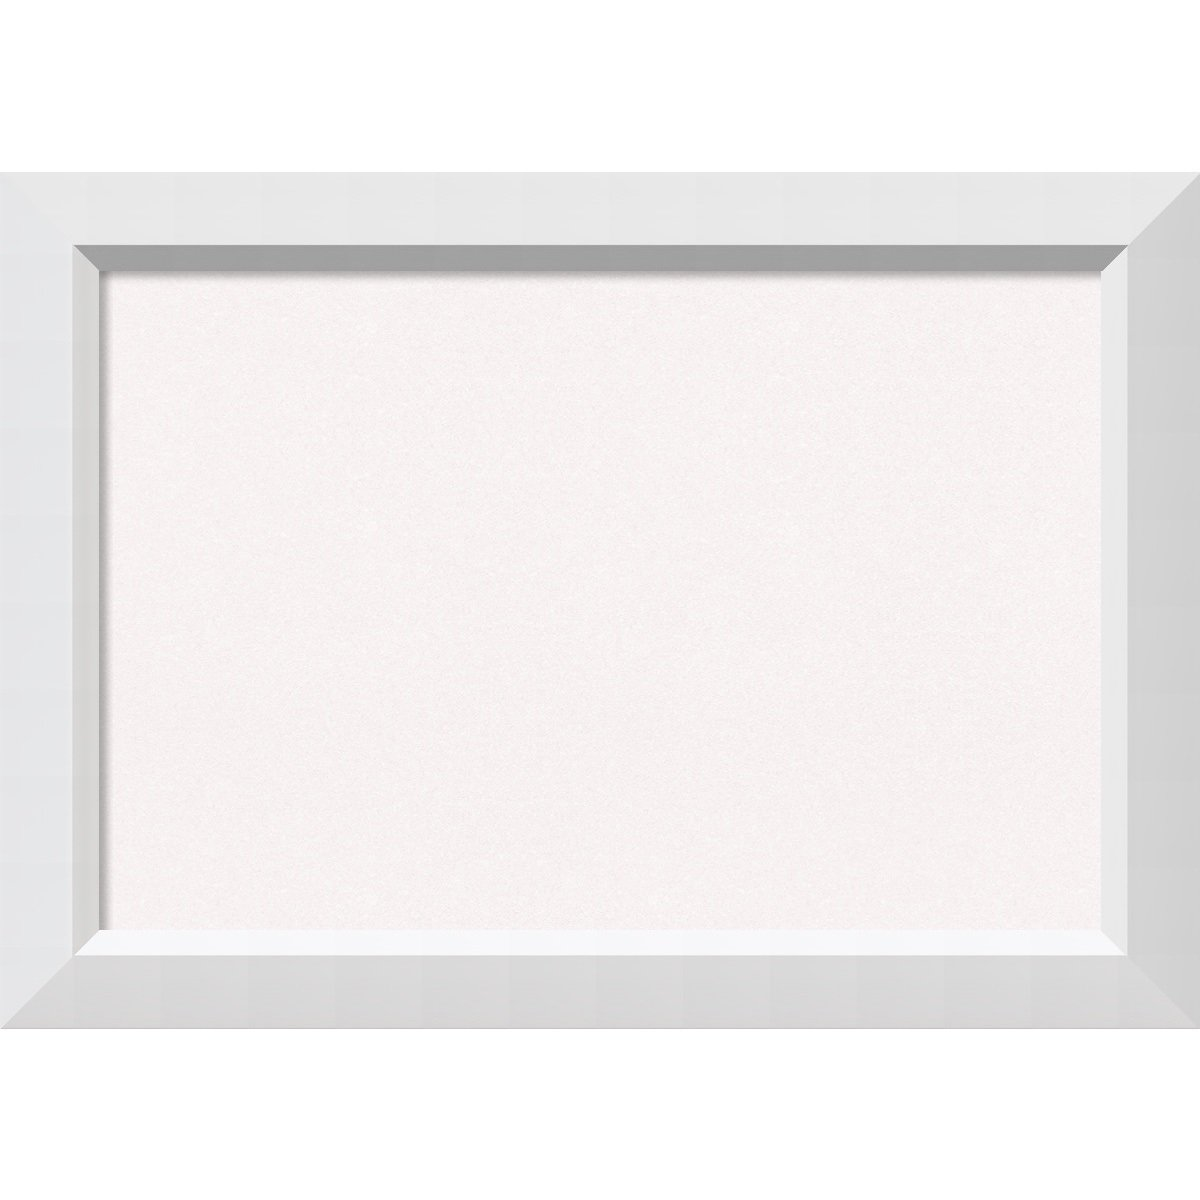 Amanti Art Framed Cork Board Blanco White: Outer Size 28 x 20'', Medium